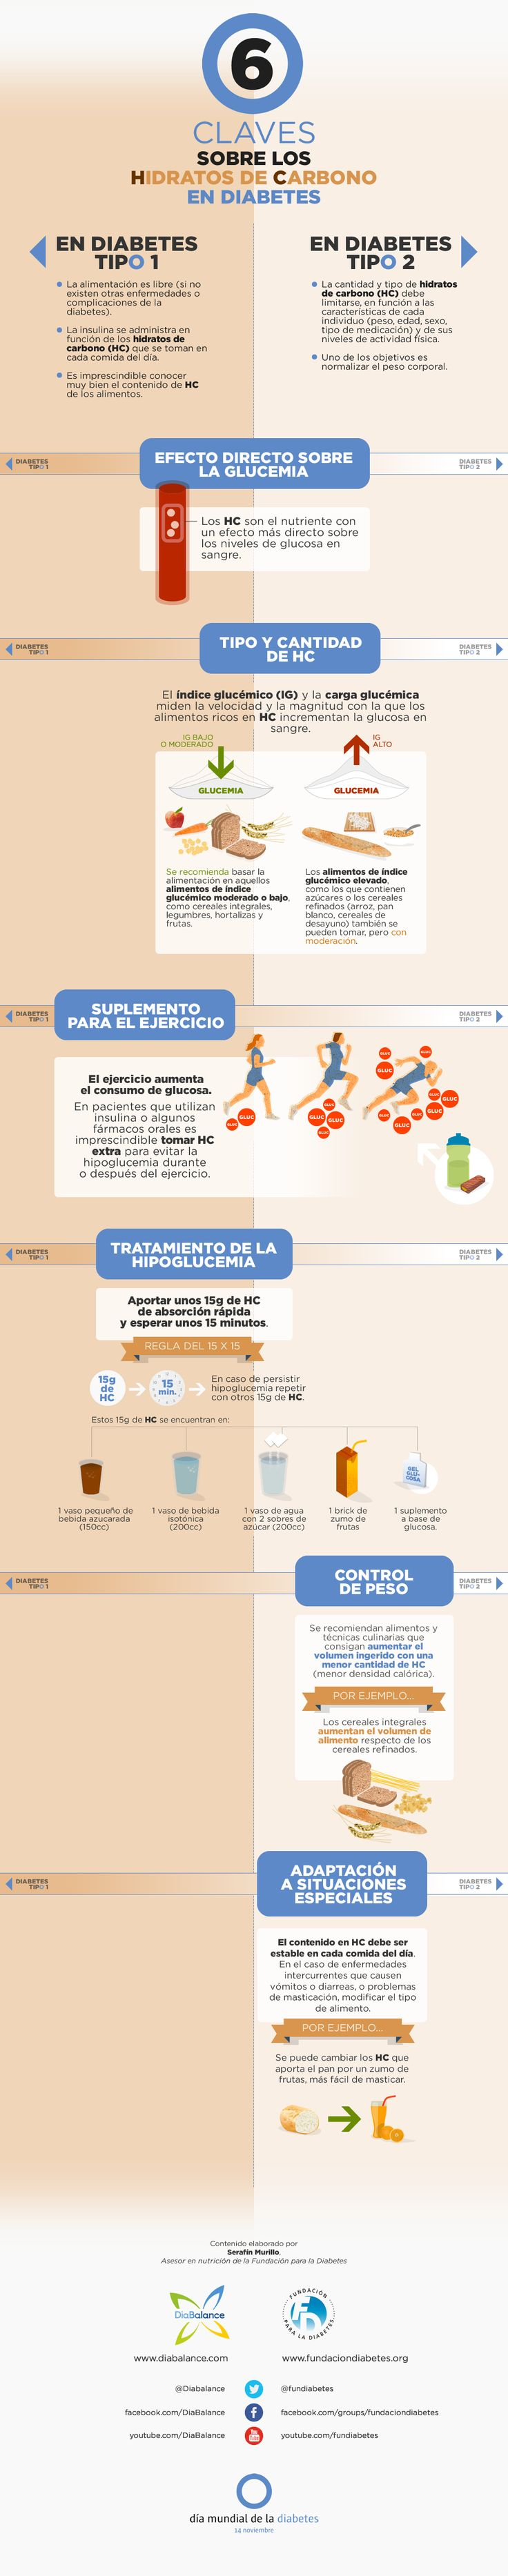 Infografía: 6 Claves sobre los Hidratos de Carbono en Diabetes